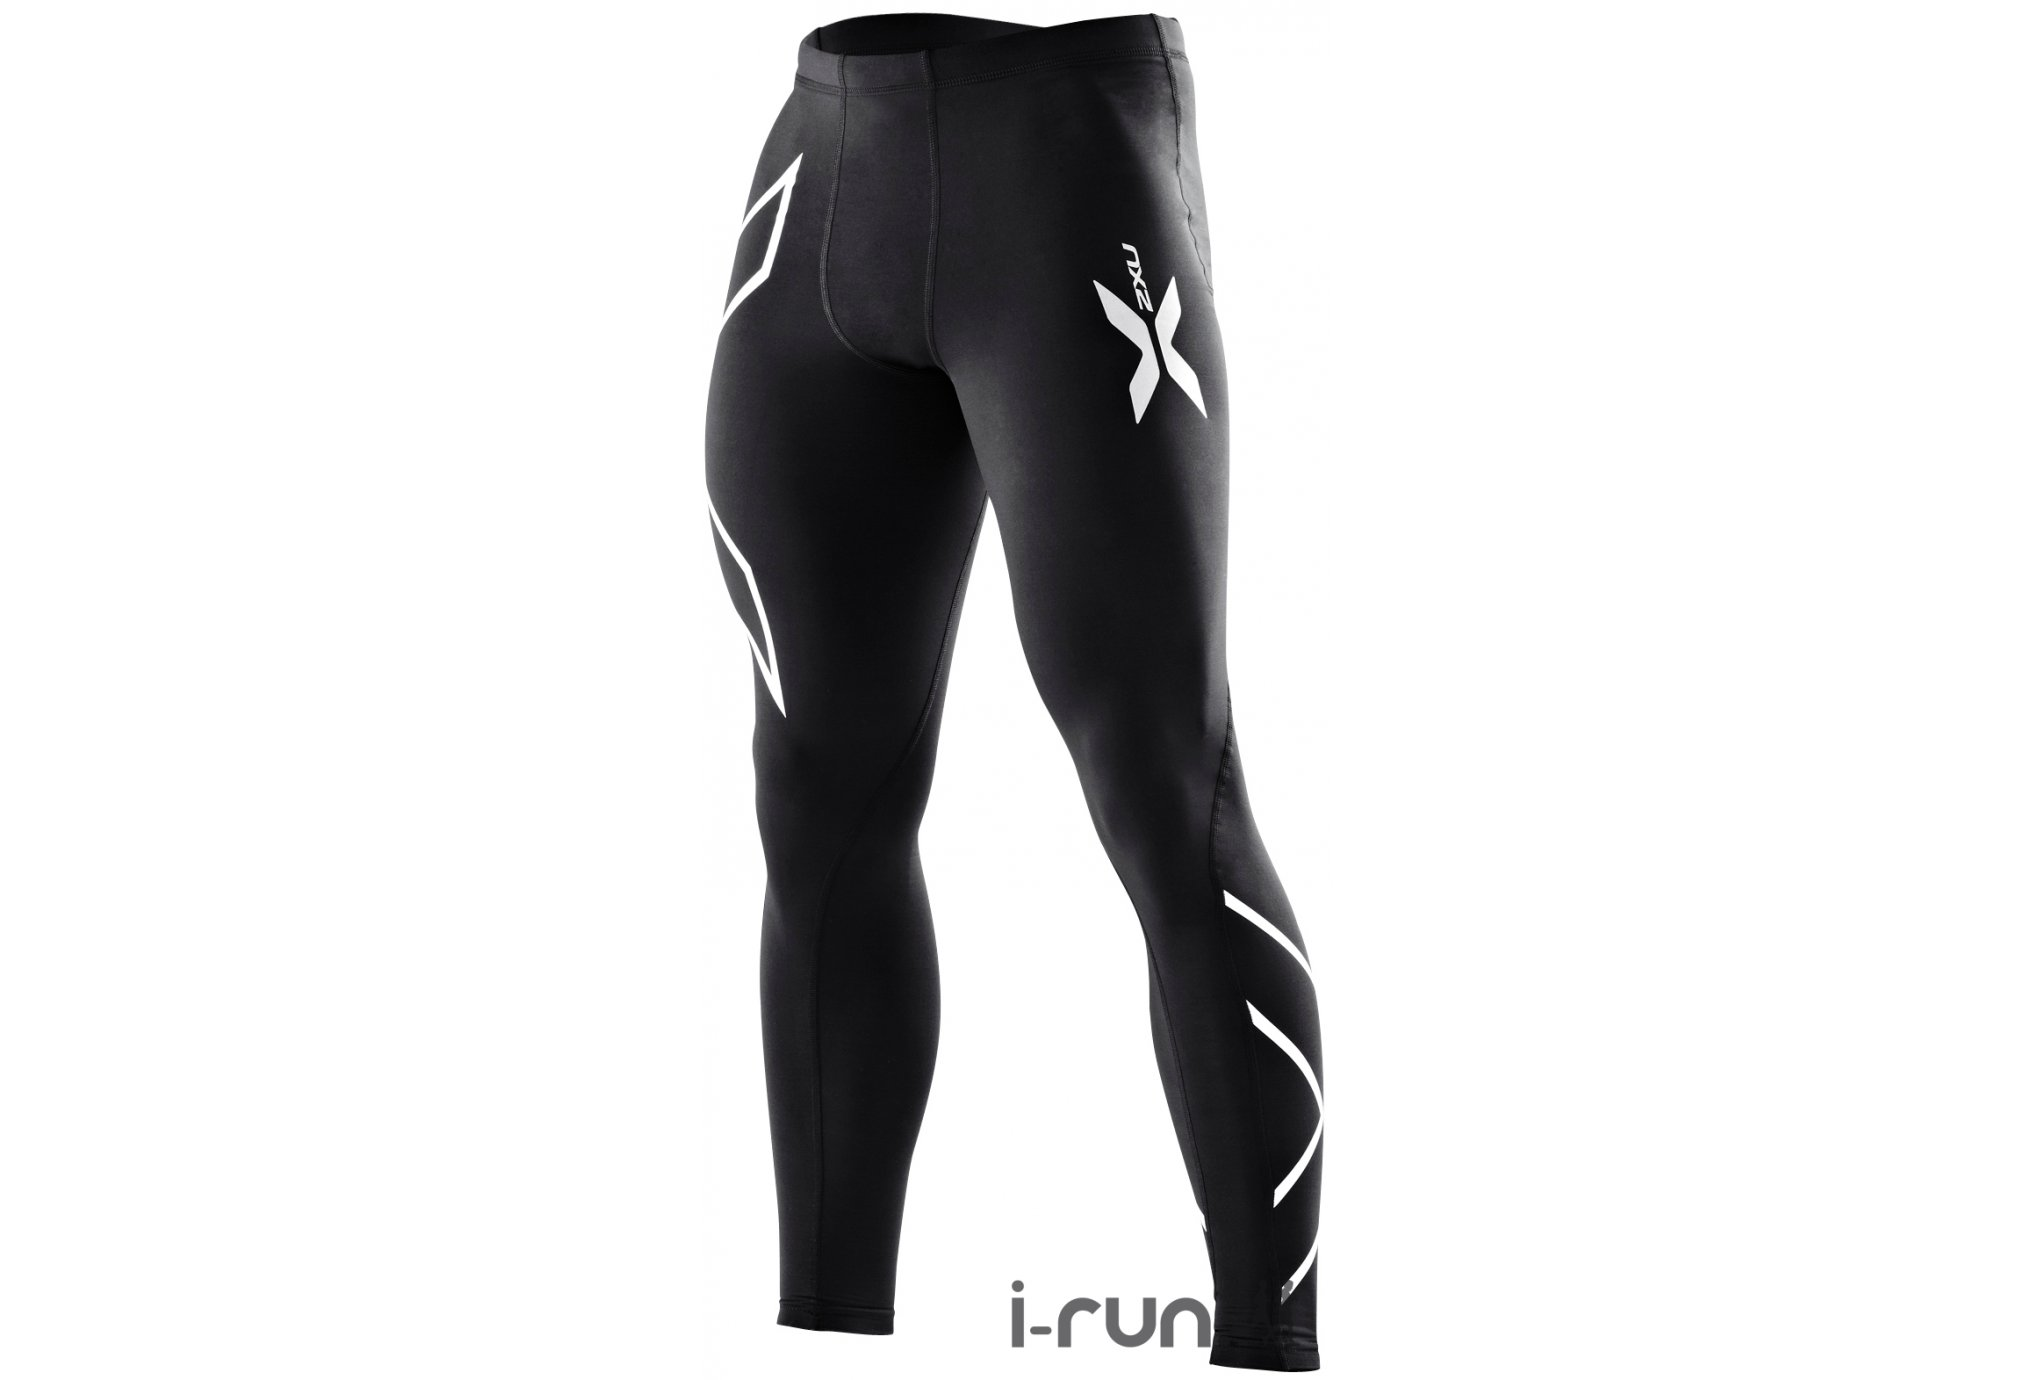 2xu Collant xform compression m vêtement running homme